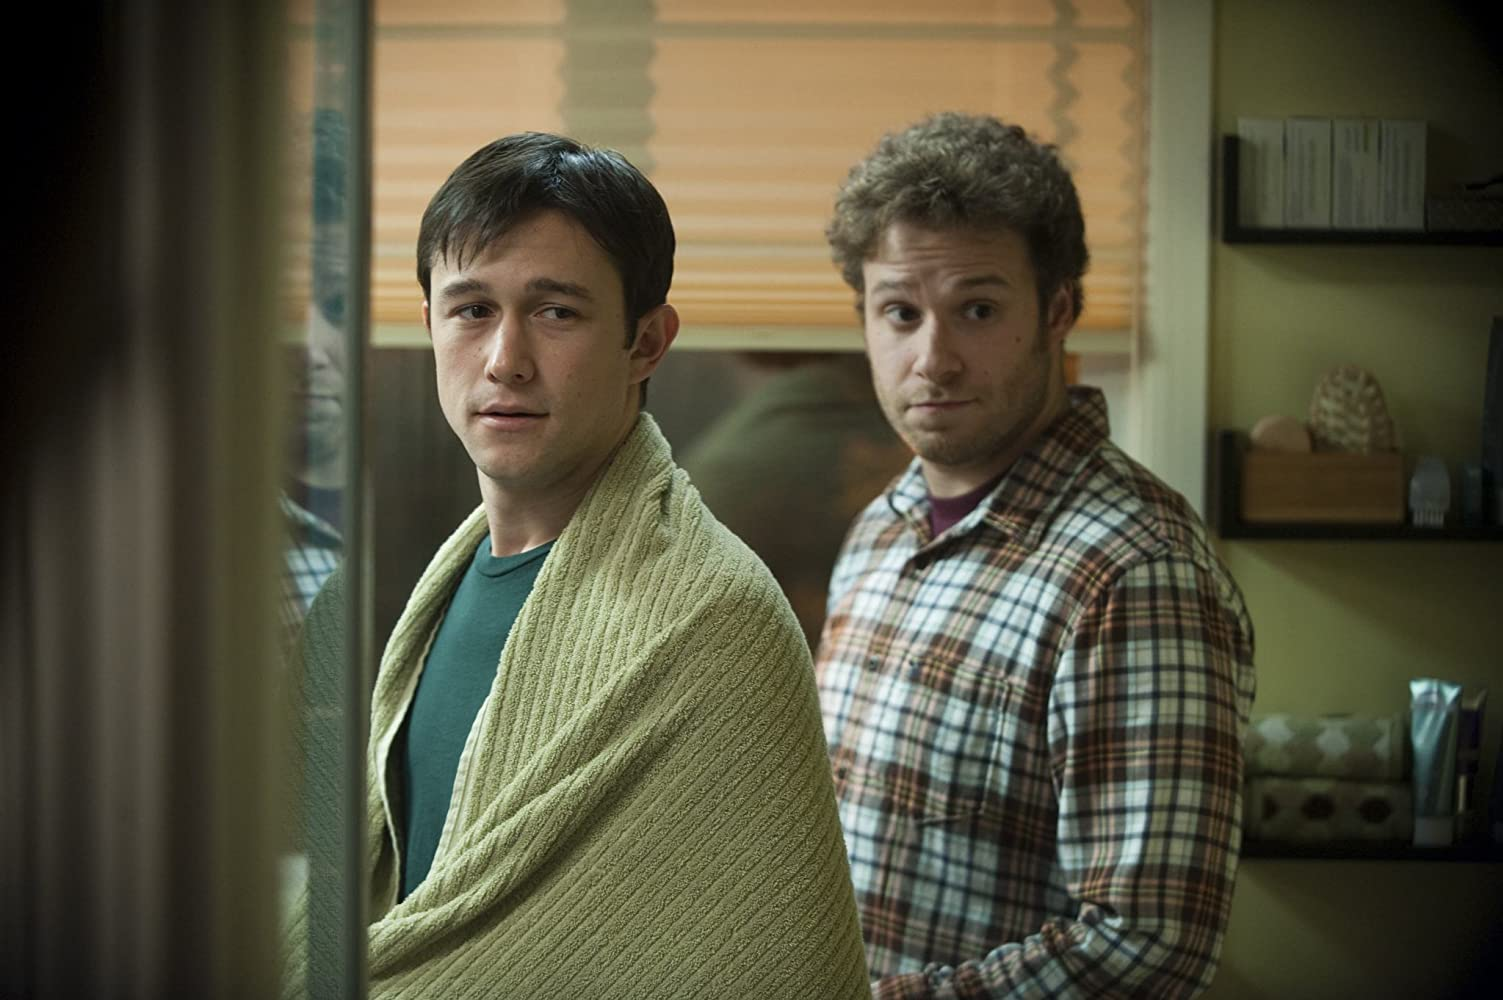 Joseph Gordon-Levitt and Seth Rogen in 50/50 (2011)